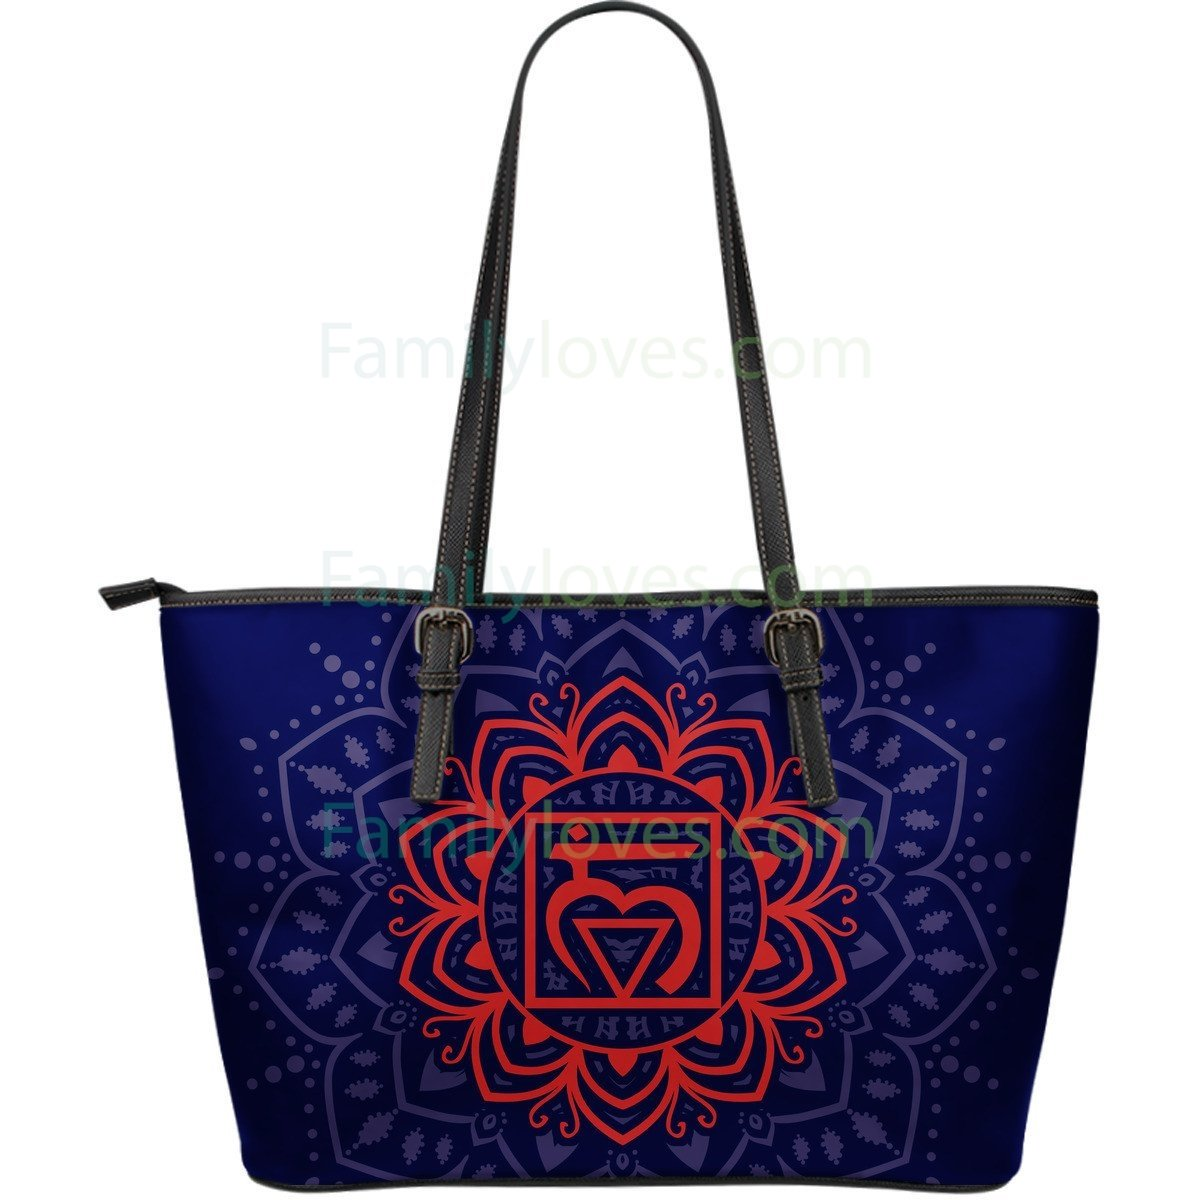 Buy Yoga Large Leather Bag - Familyloves hoodies t-shirt jacket mug cheapest free shipping 50% off